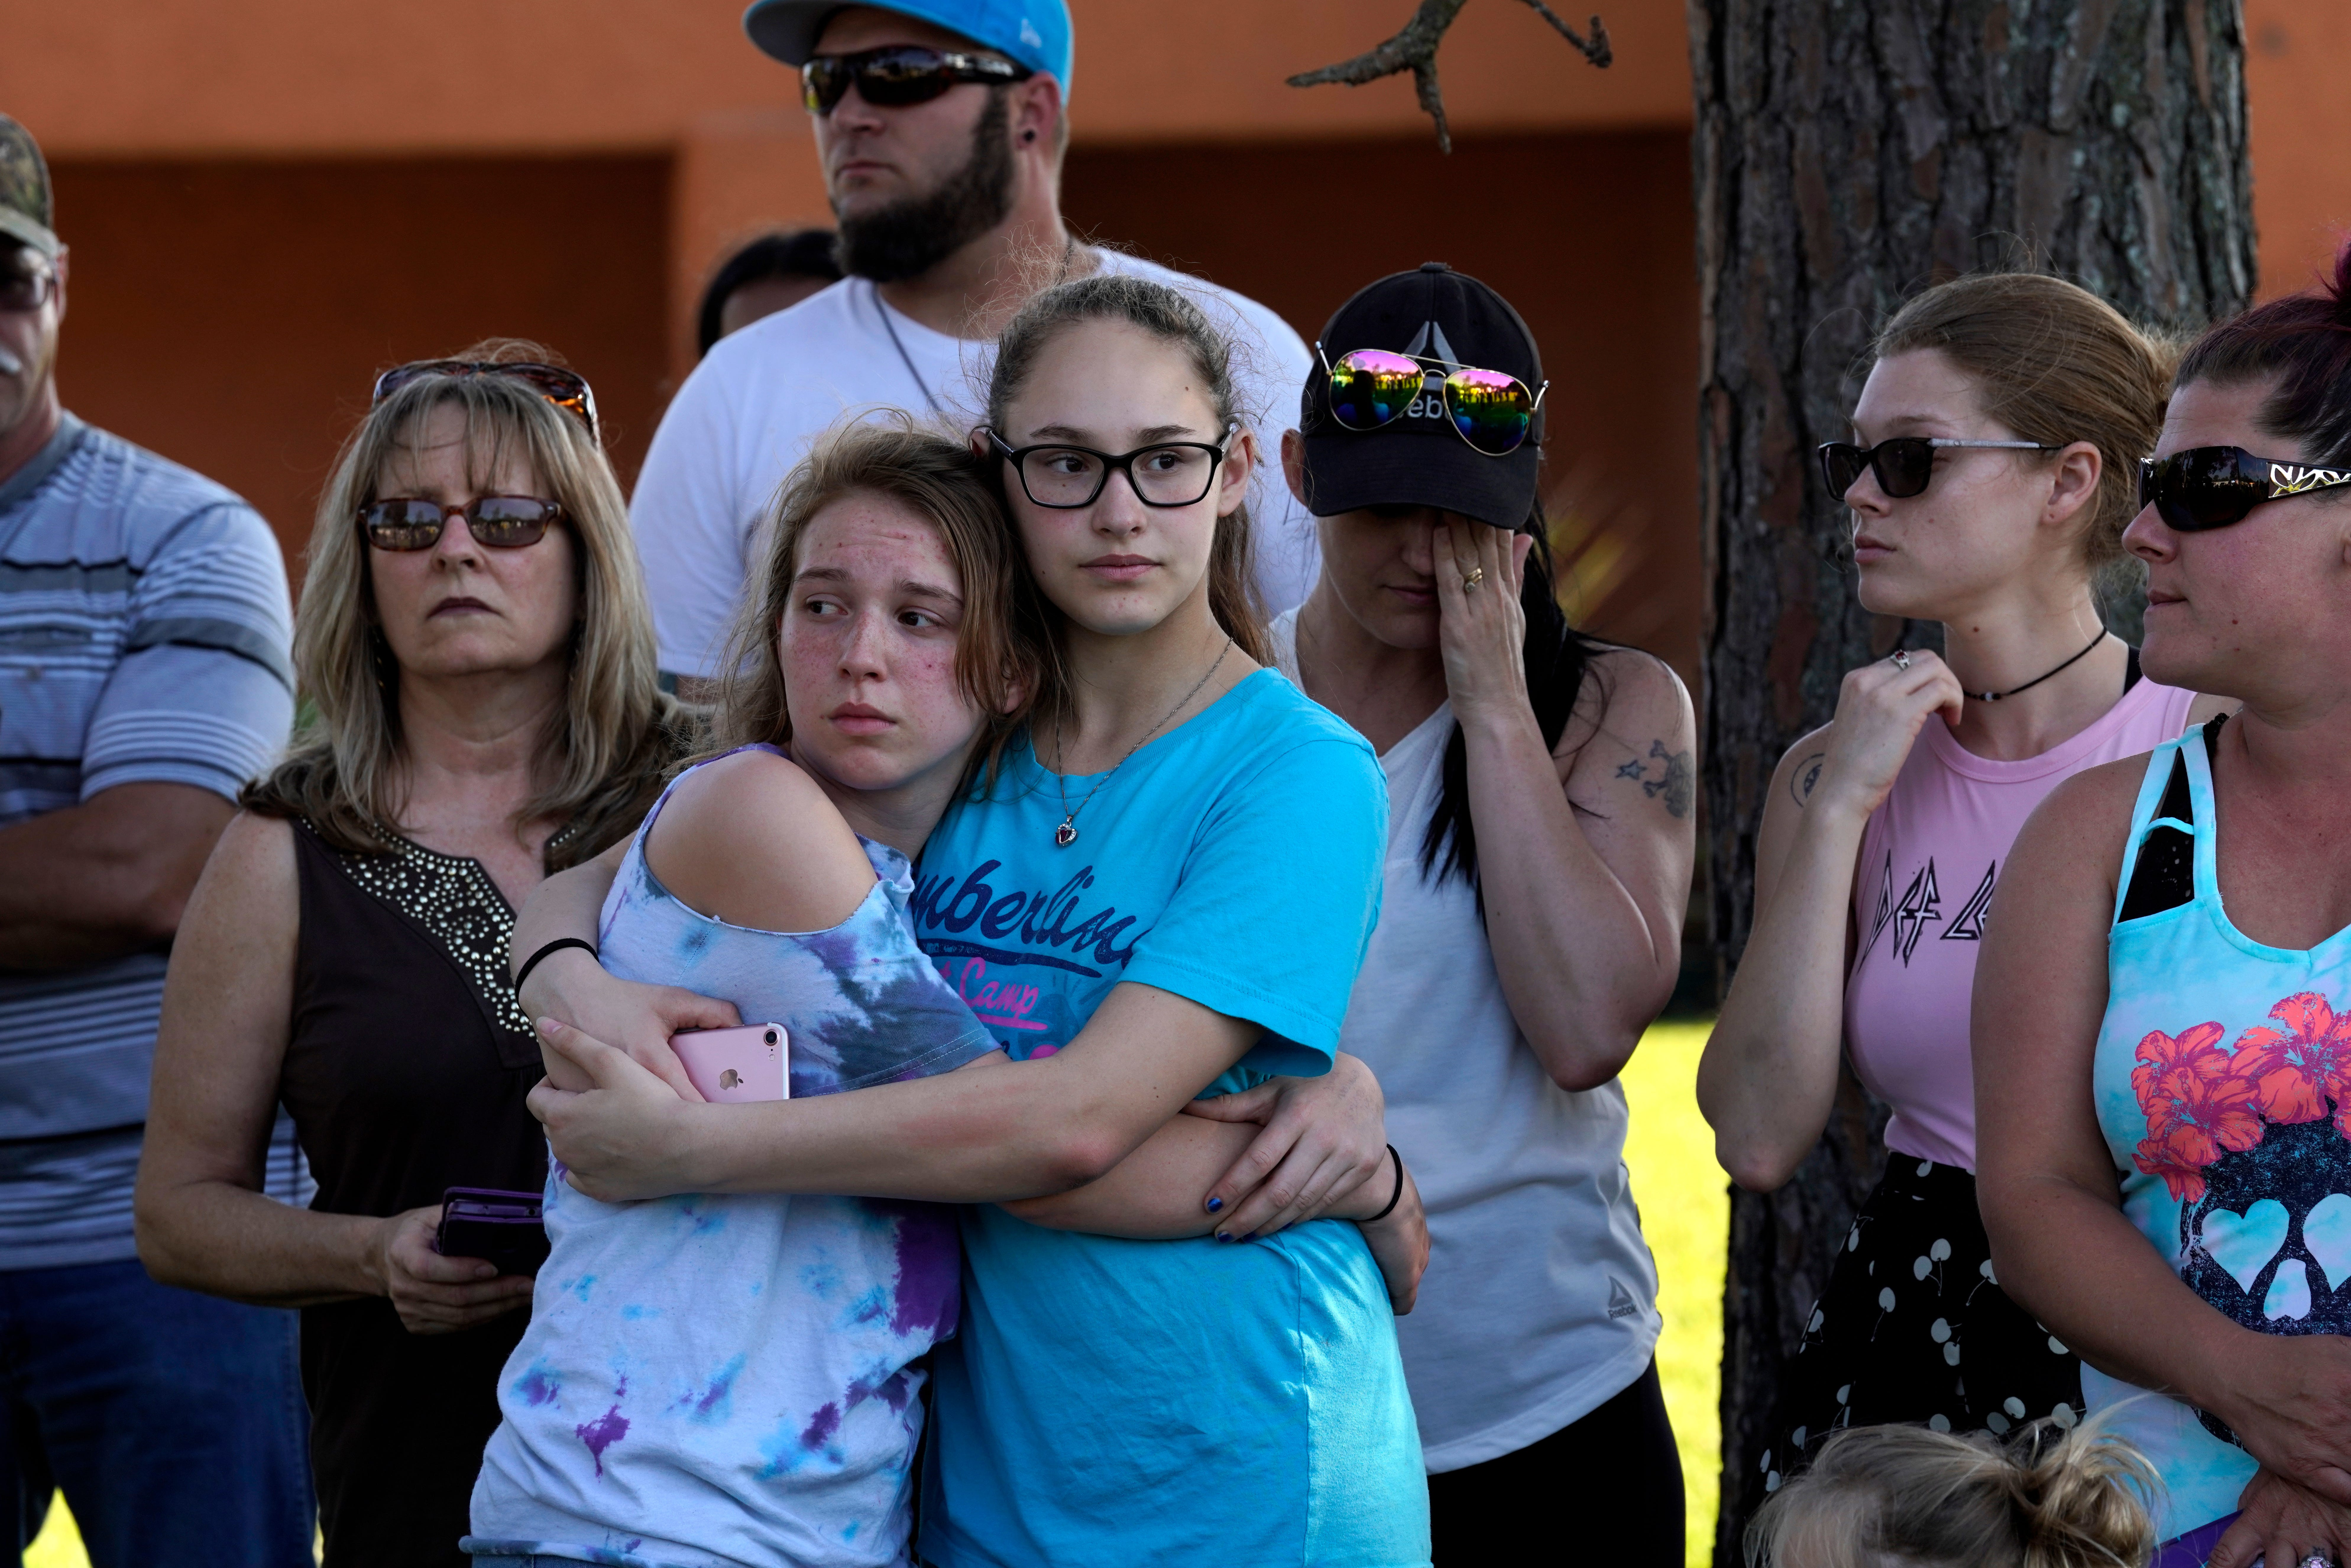 Texas high school shooting suspect yelled 'surprise' and started firing, witness said